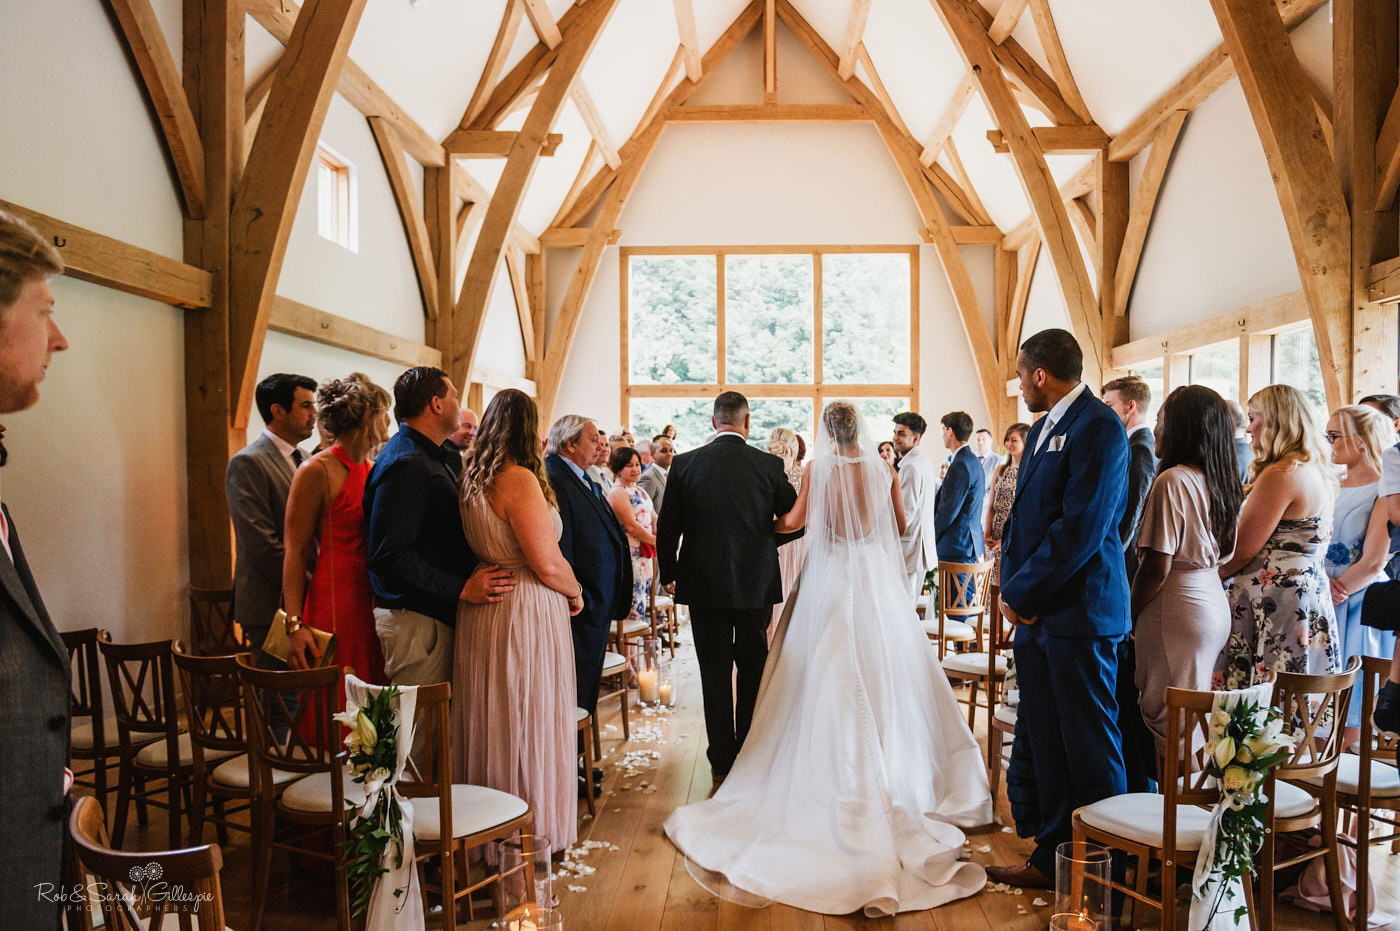 Bride walks up aisle at The Mill Barns wedding ceremony